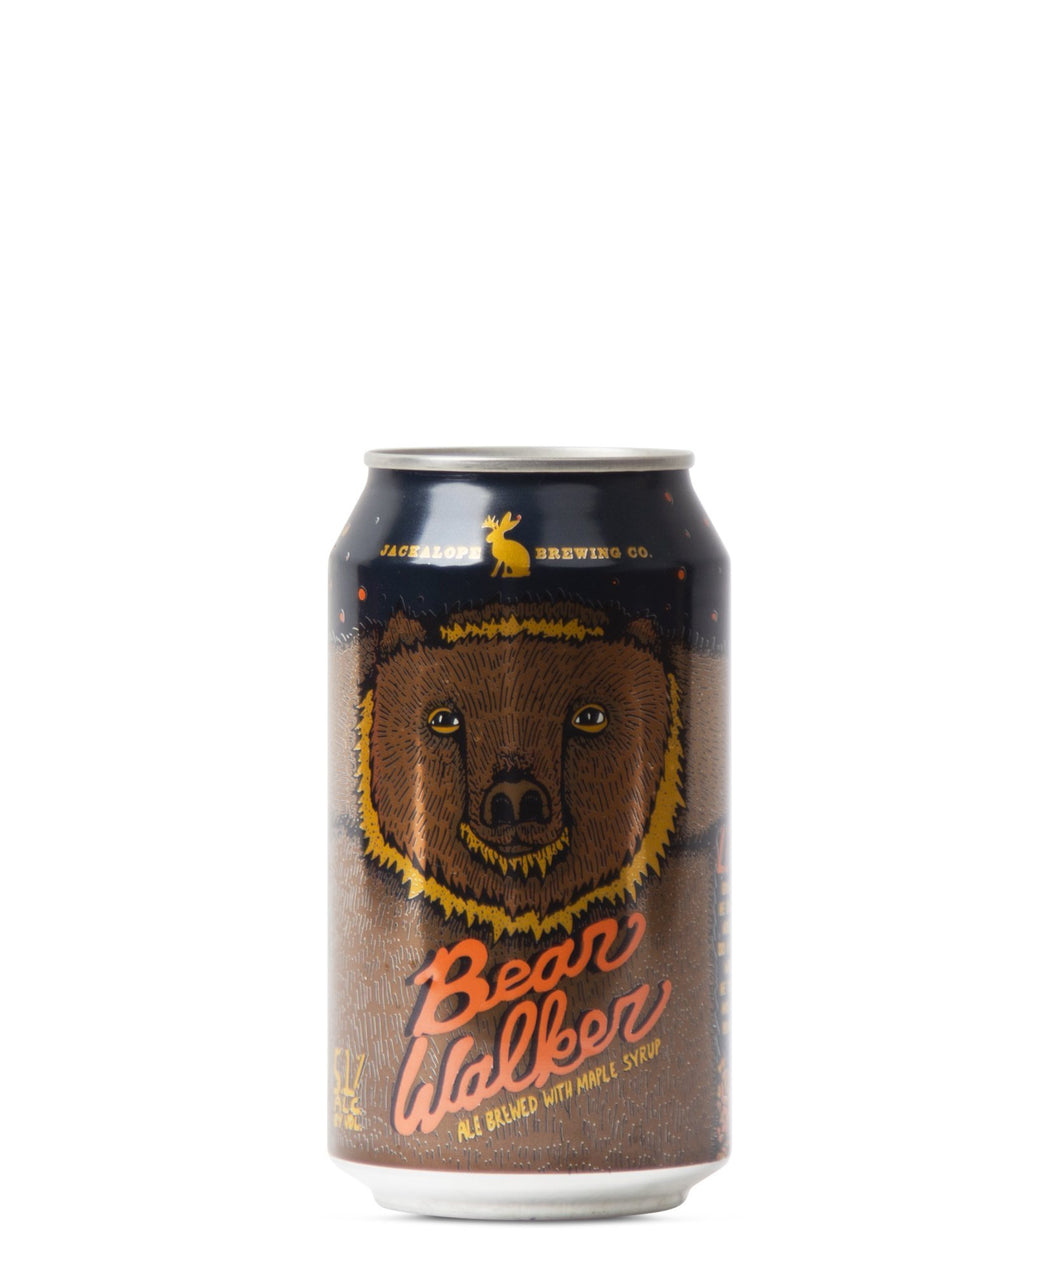 Bearwalker - Jackalope Brewing Company Delivered By TapRm